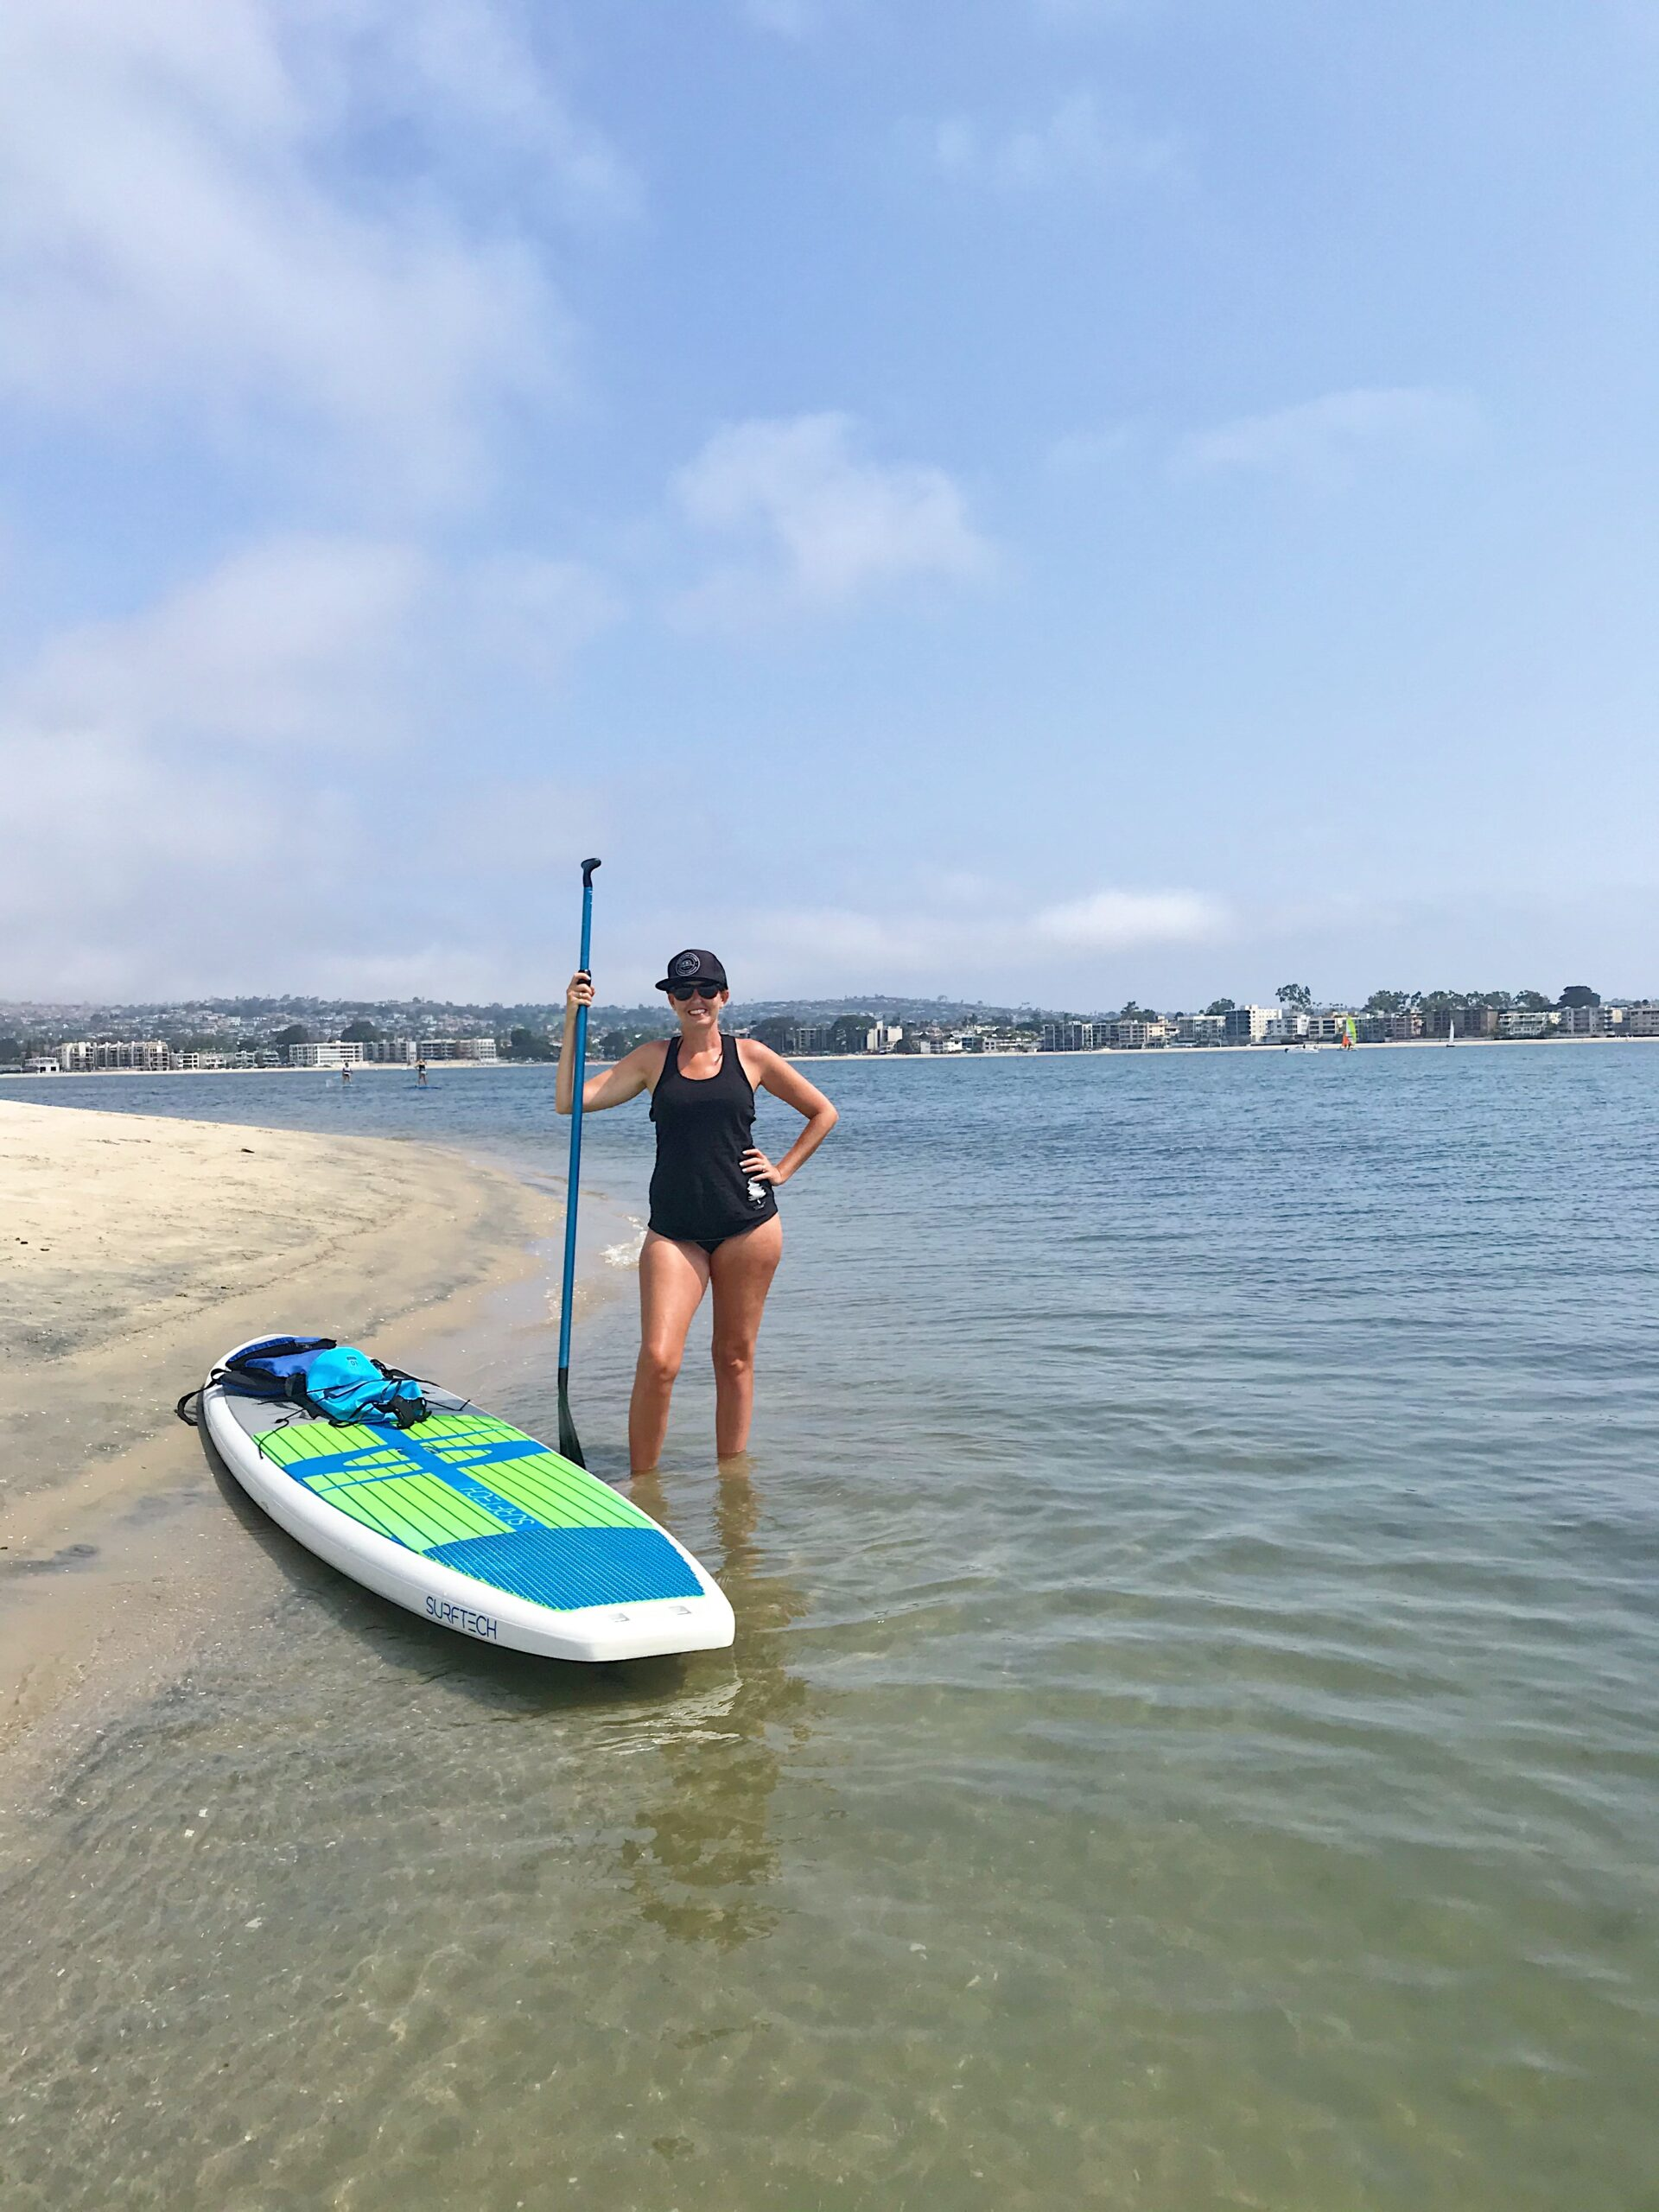 Where to rent a paddle board in Mission Bay San Diego